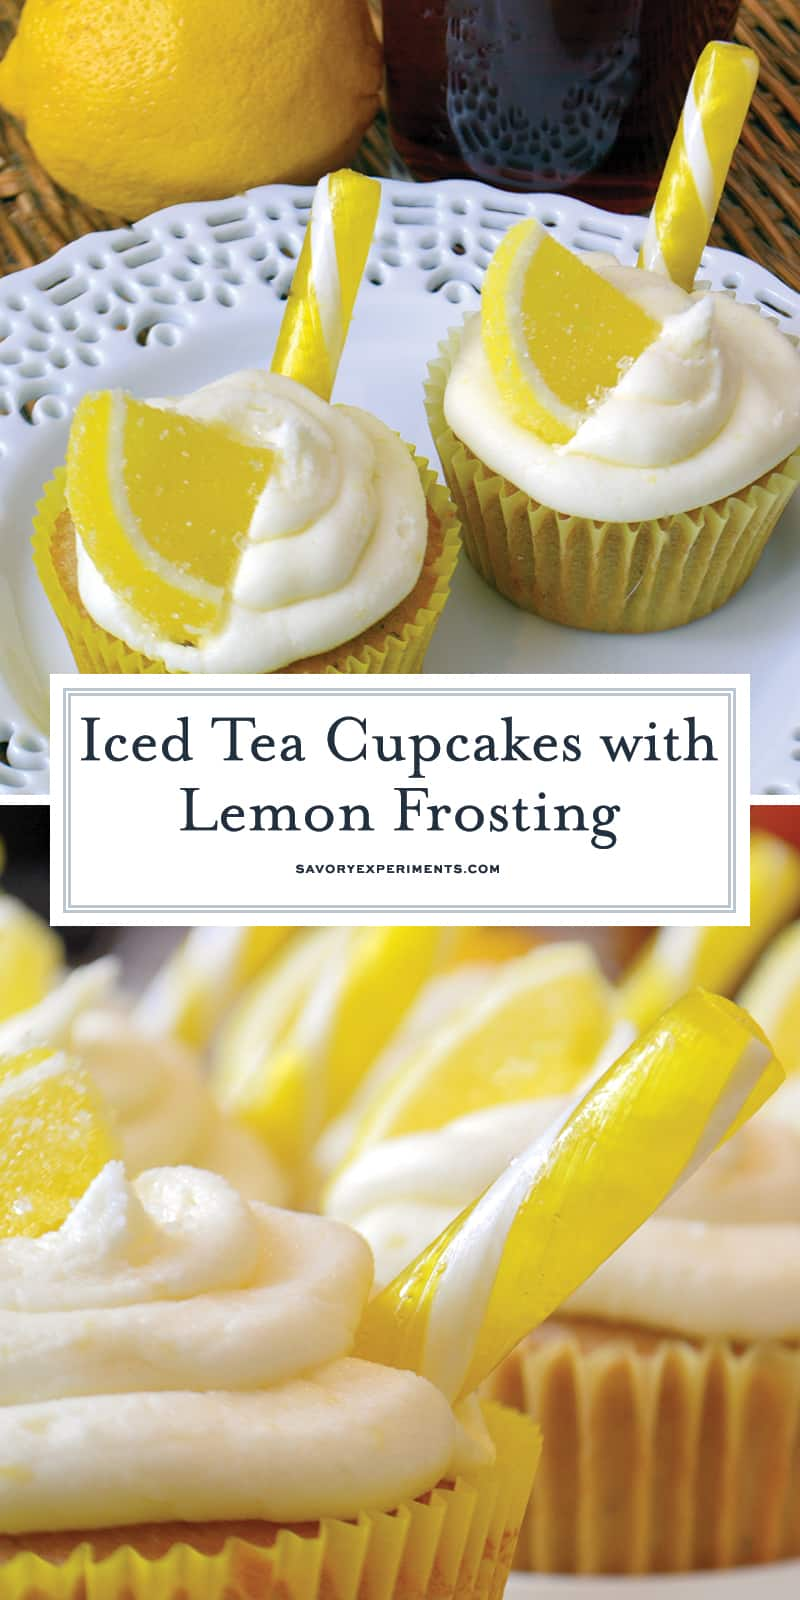 Iced Tea Cupcakes with Lemon Frosting is a cupcake recipe made from iced tea lemonade! These cute cupcakes are perfect for summer BBQs and parties! #lemoncupcakes #icedteacupcakes www.savoryexperiments.com